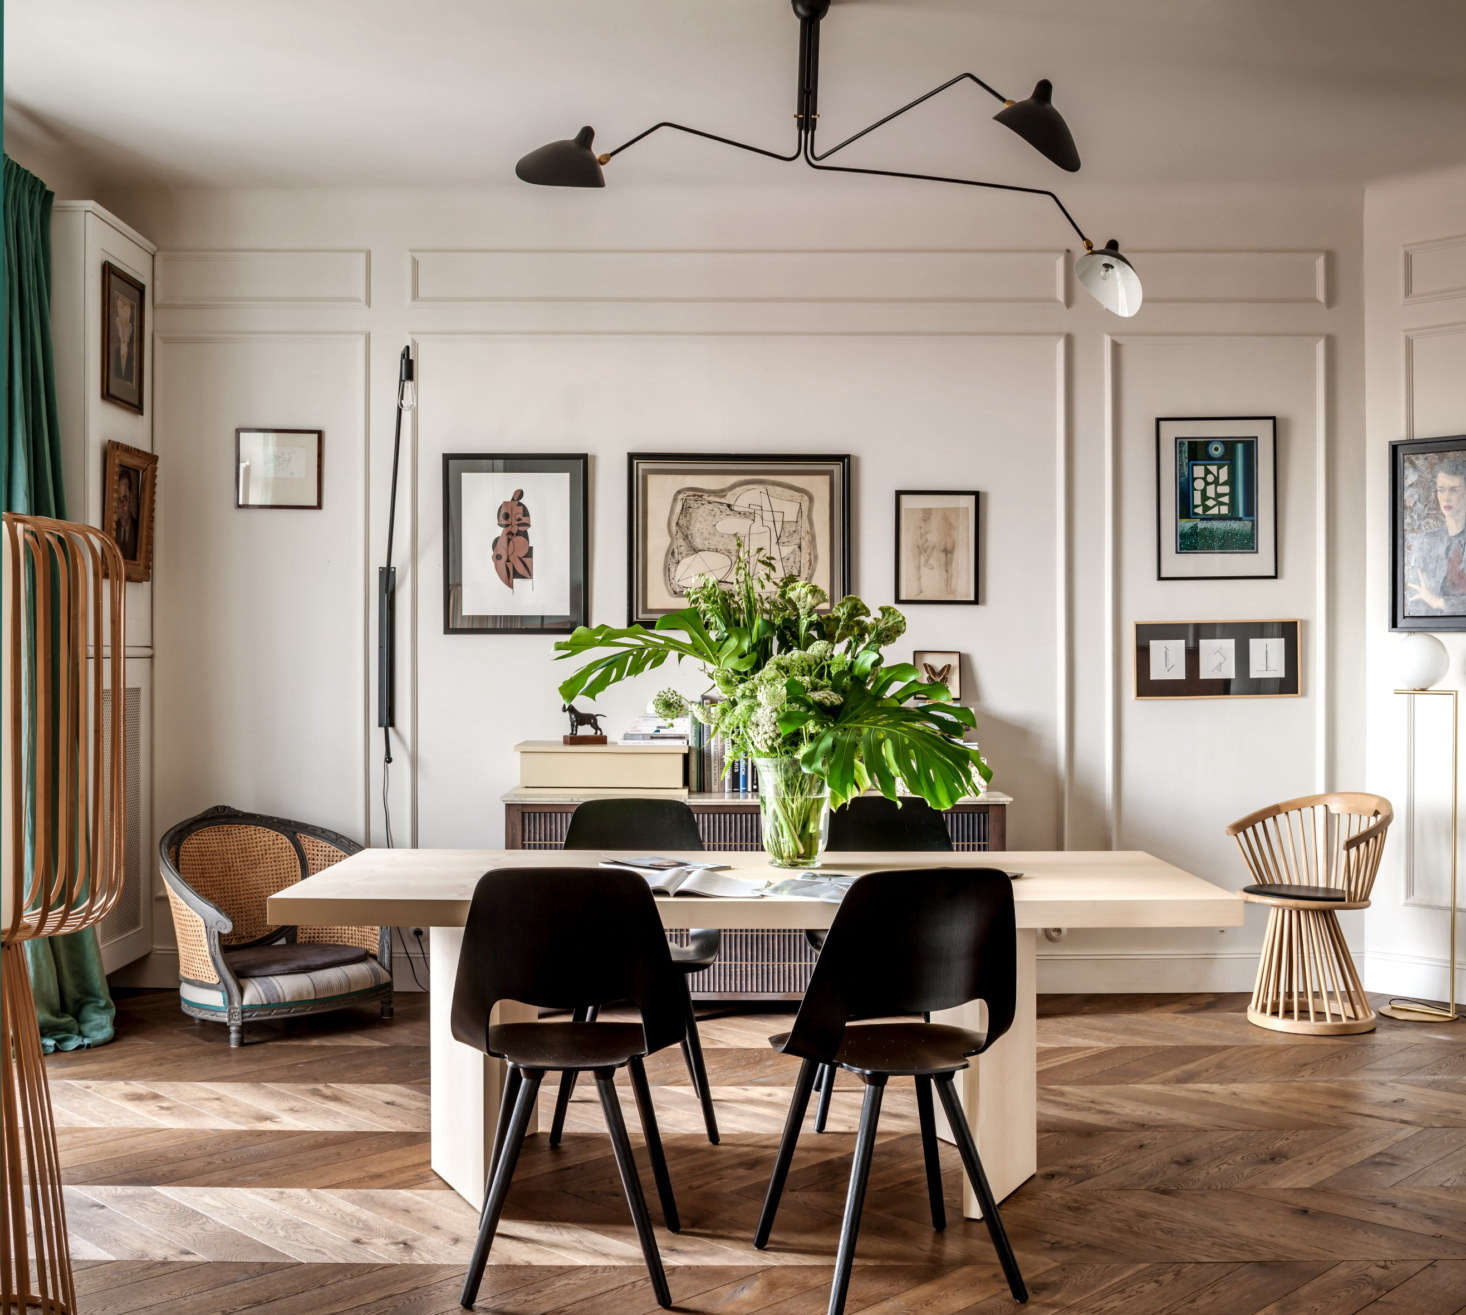 Chrapka and her team designed the dining table, flanked by plywoodVitra chairs, and the sideboard. Much of the art in this room is from eBay. Note the antique armchair, at left, that was cleverly converted into a dog bed.